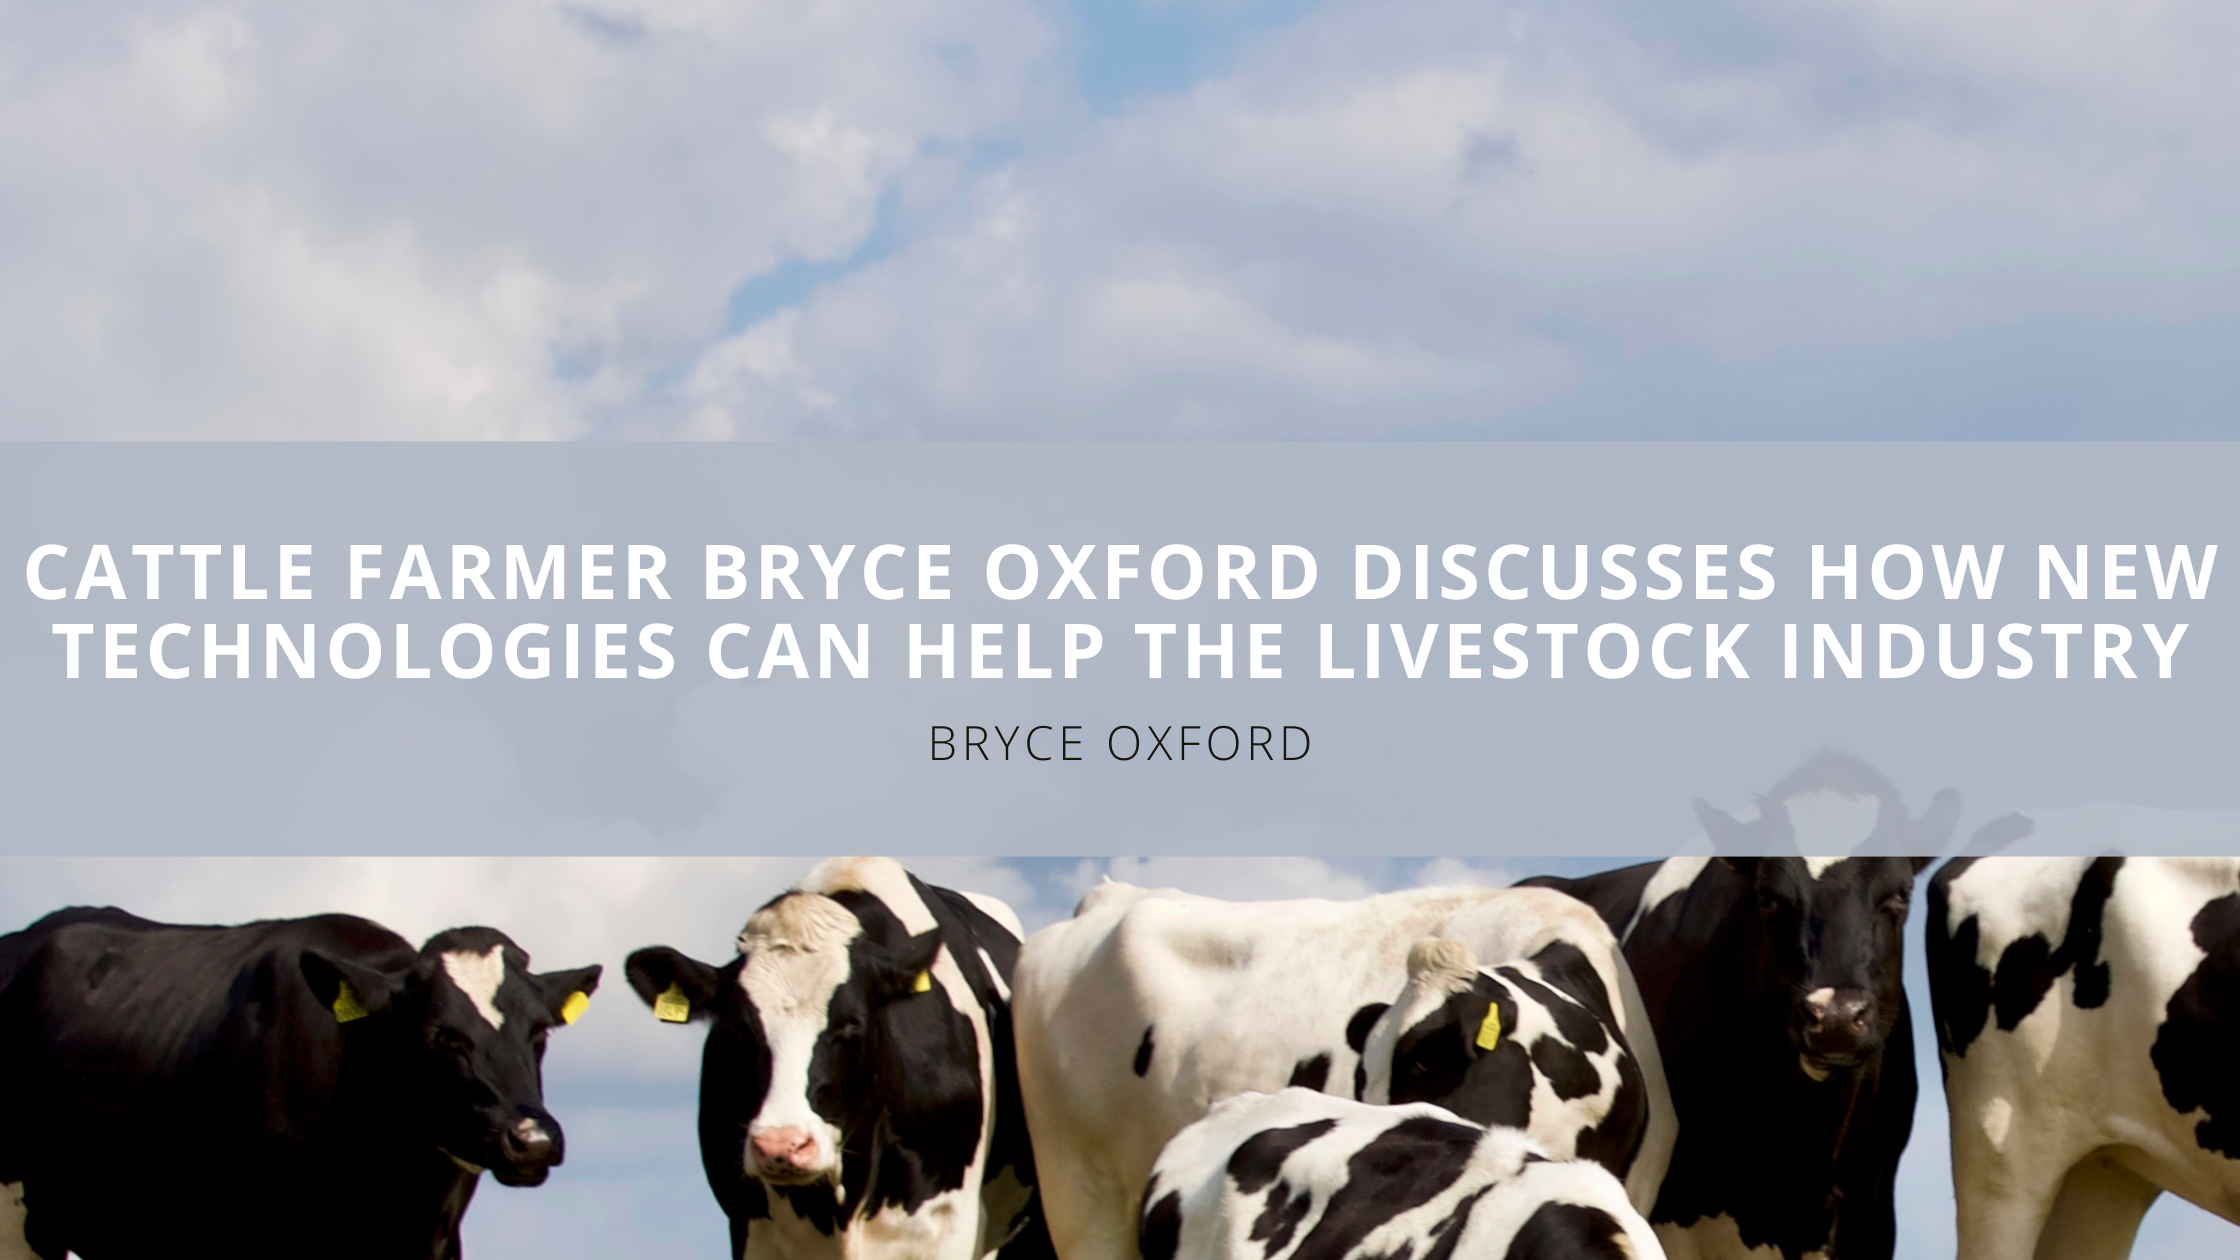 Cattle Farmer Bryce Oxford Discusses How New Technologies Can Help the Livestock Industry